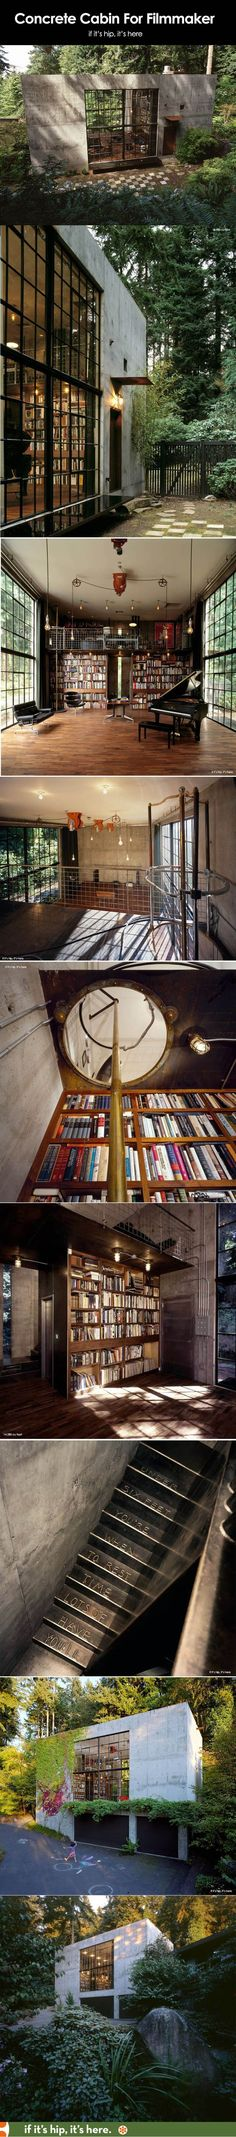 Concrete Cabin For Filmmaker Is A Stunning Space Based On A Garage. - See more at: http://www.ifitshipitshere.com/olson-kundig-the-brain/#sthash.35bTXX8B.dpuf